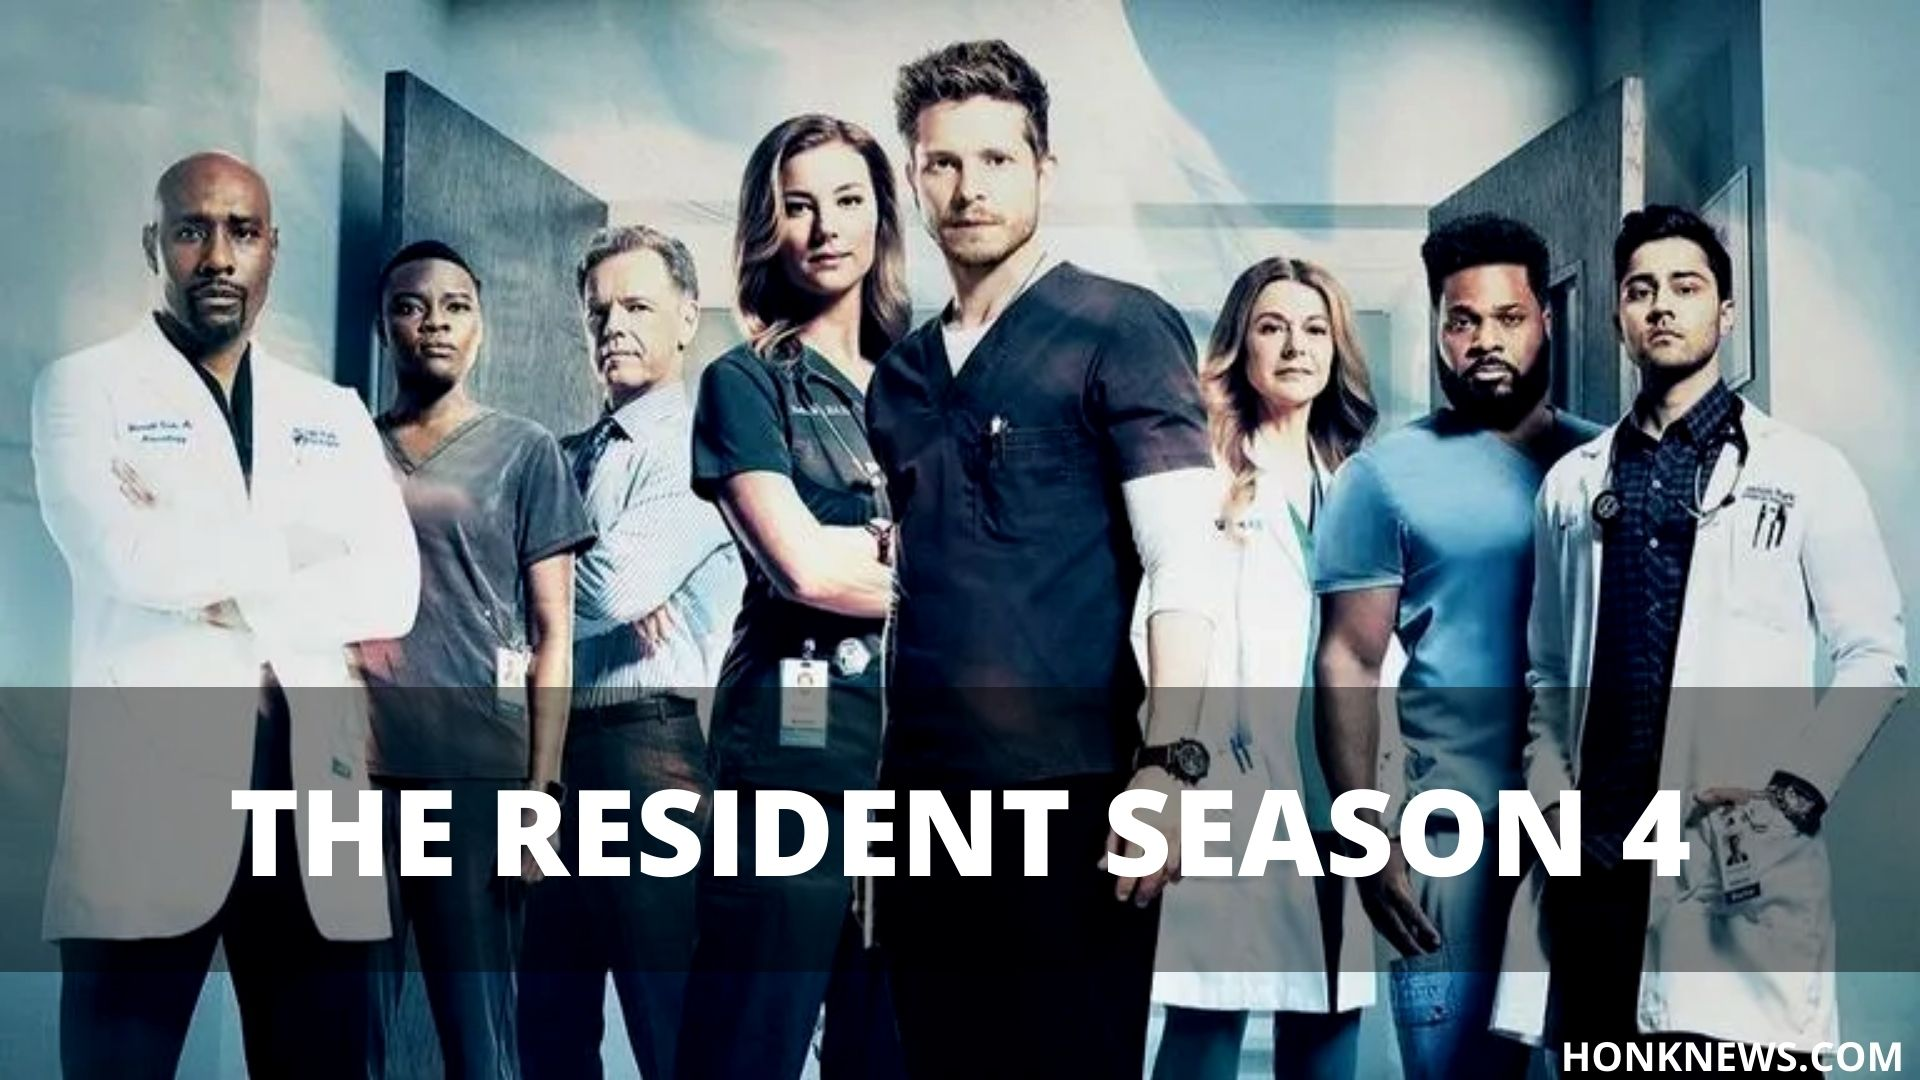 Get All The Details About The Resident Season 4